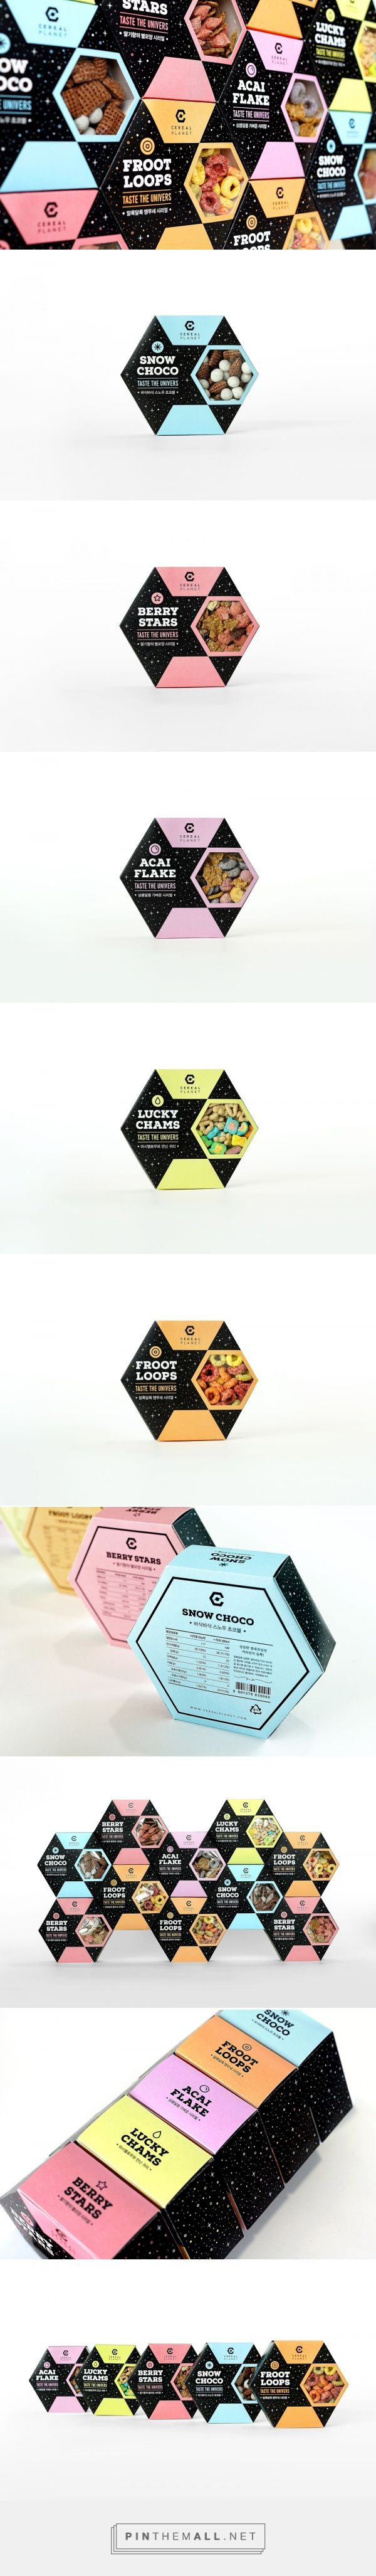 Cereal Planet packaging design by Mihyun Sim - http://www.packagingoftheworld.com/2016/12/cereal-planet.html